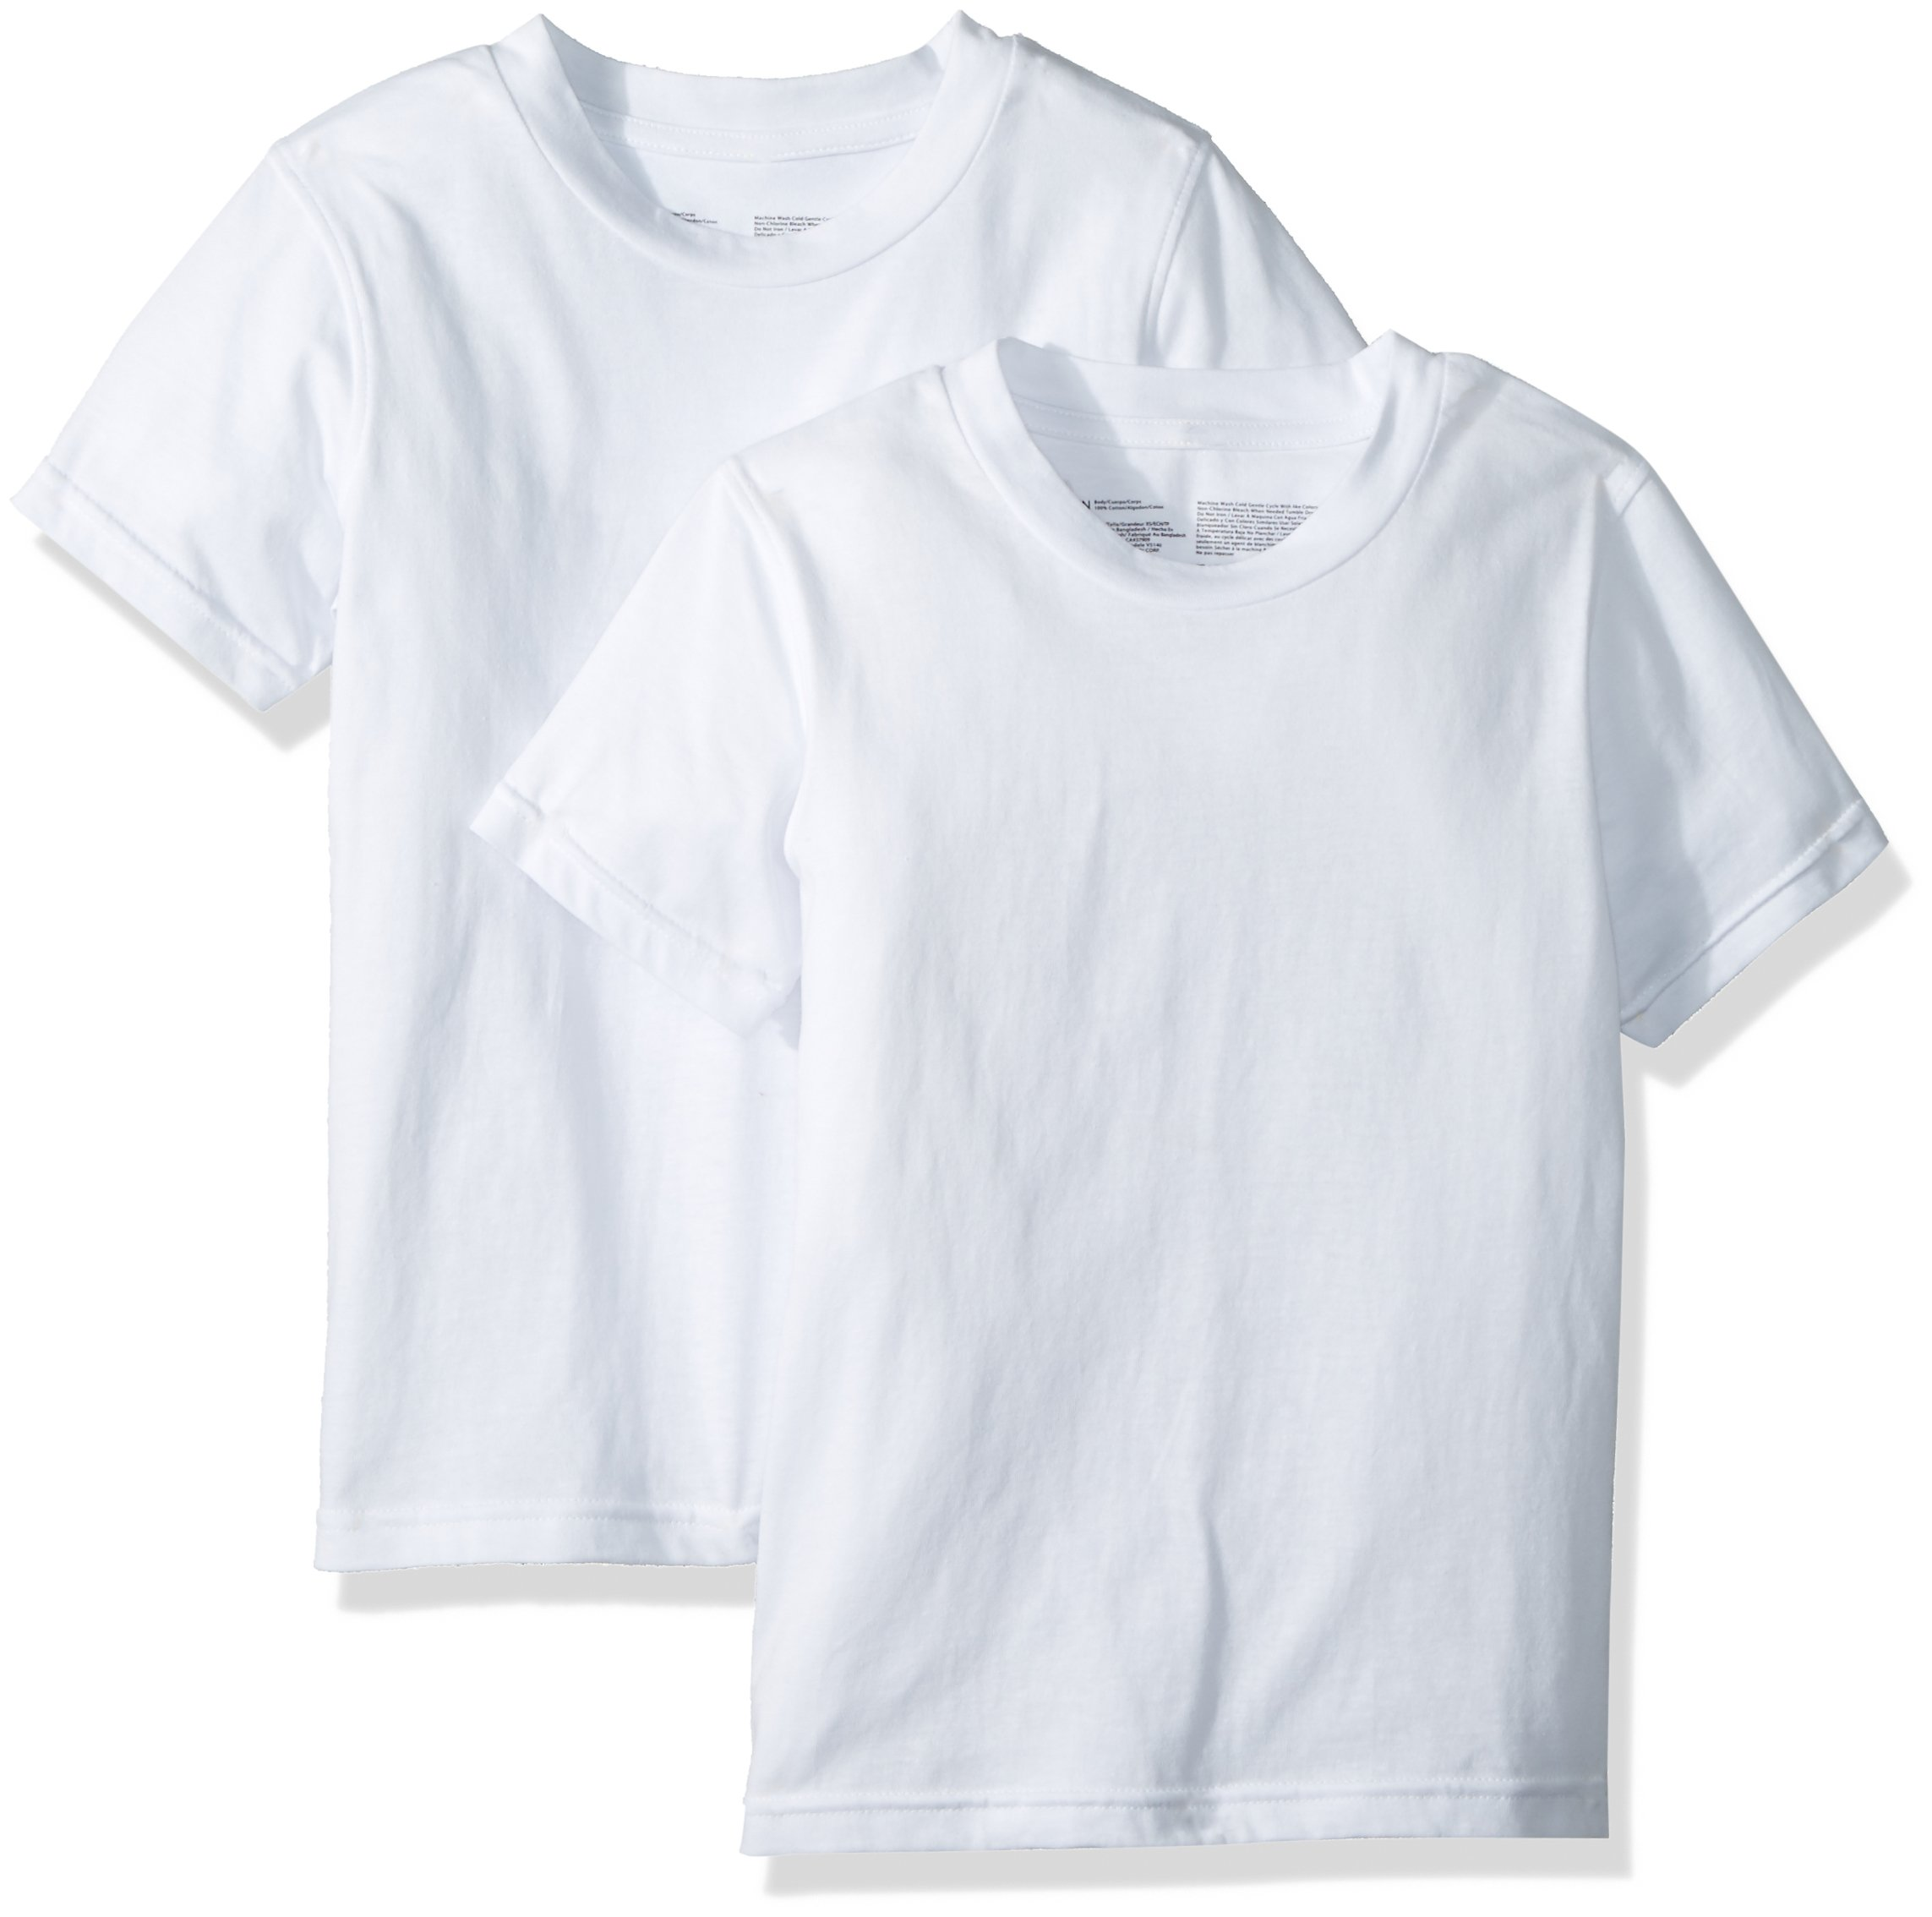 Calvin Klein Big Boys' 2 Pack Short Sleeve T-Shirt, Classic White/Classic White, S (6/7)